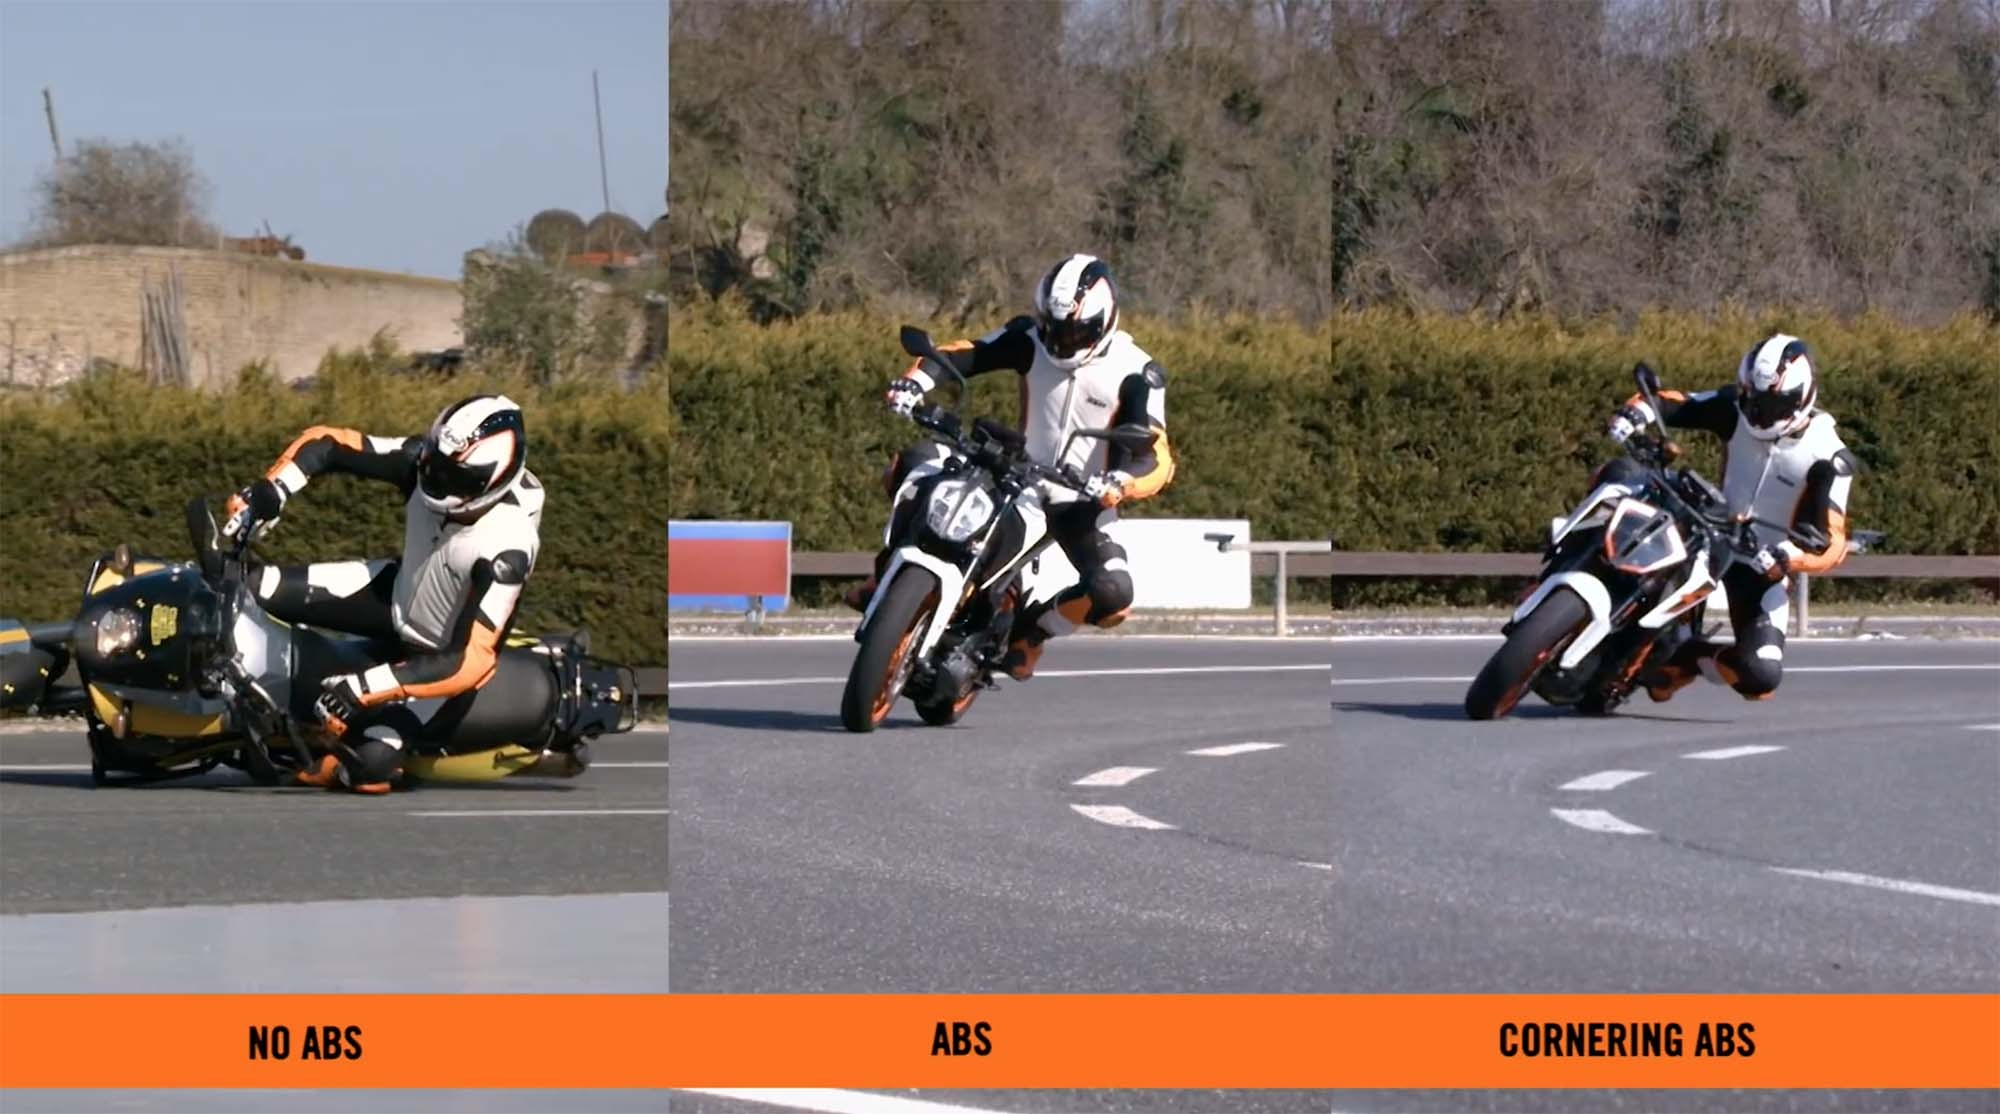 KTM cornering abs video 01